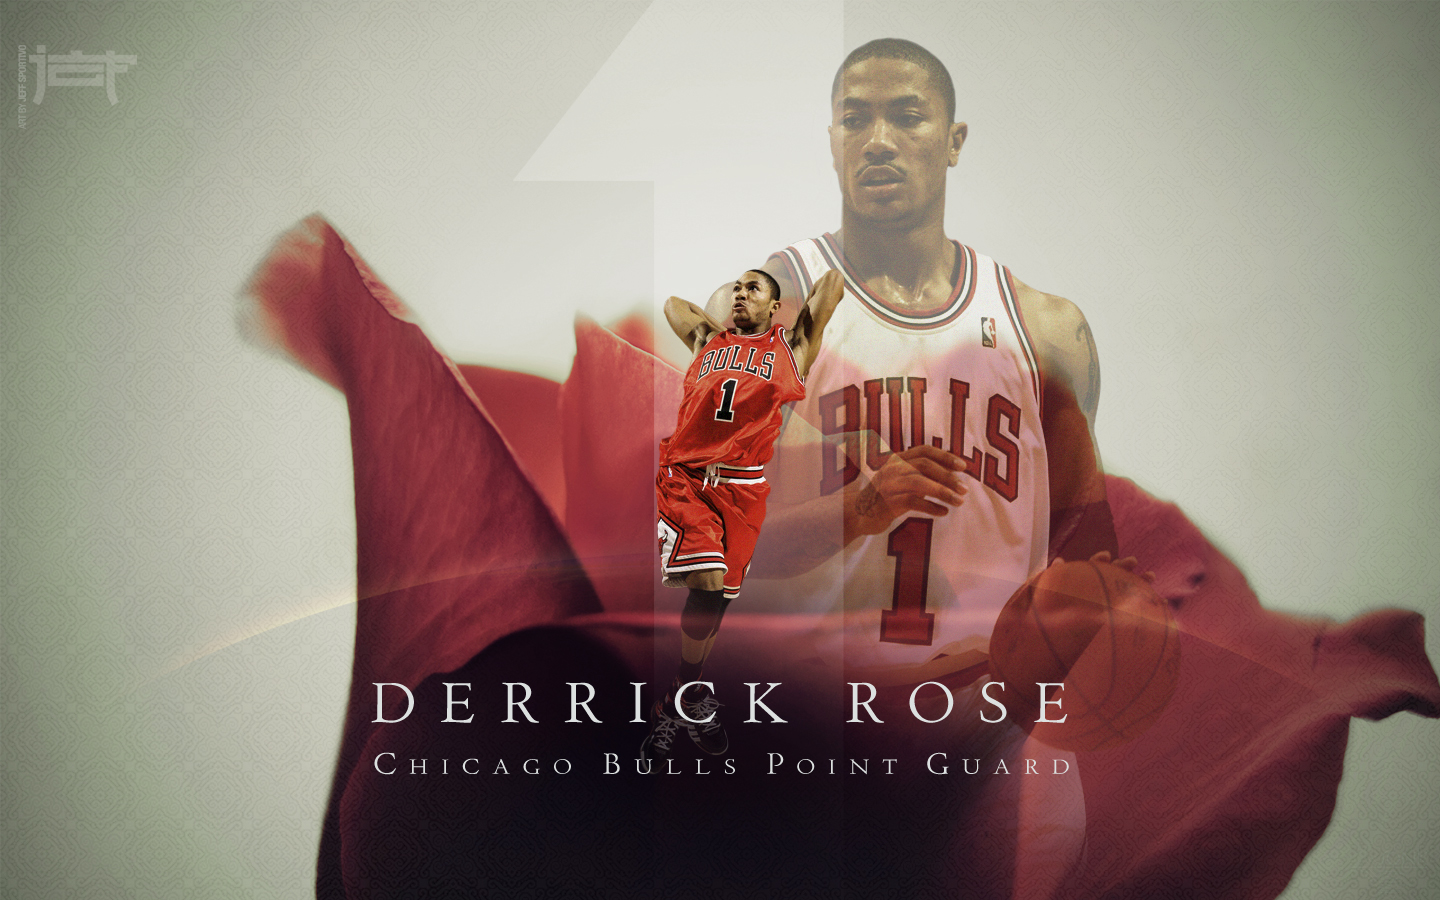 Derrick Rose basketball wallpapers NBA Wallpapers Basket Ball 1440x900